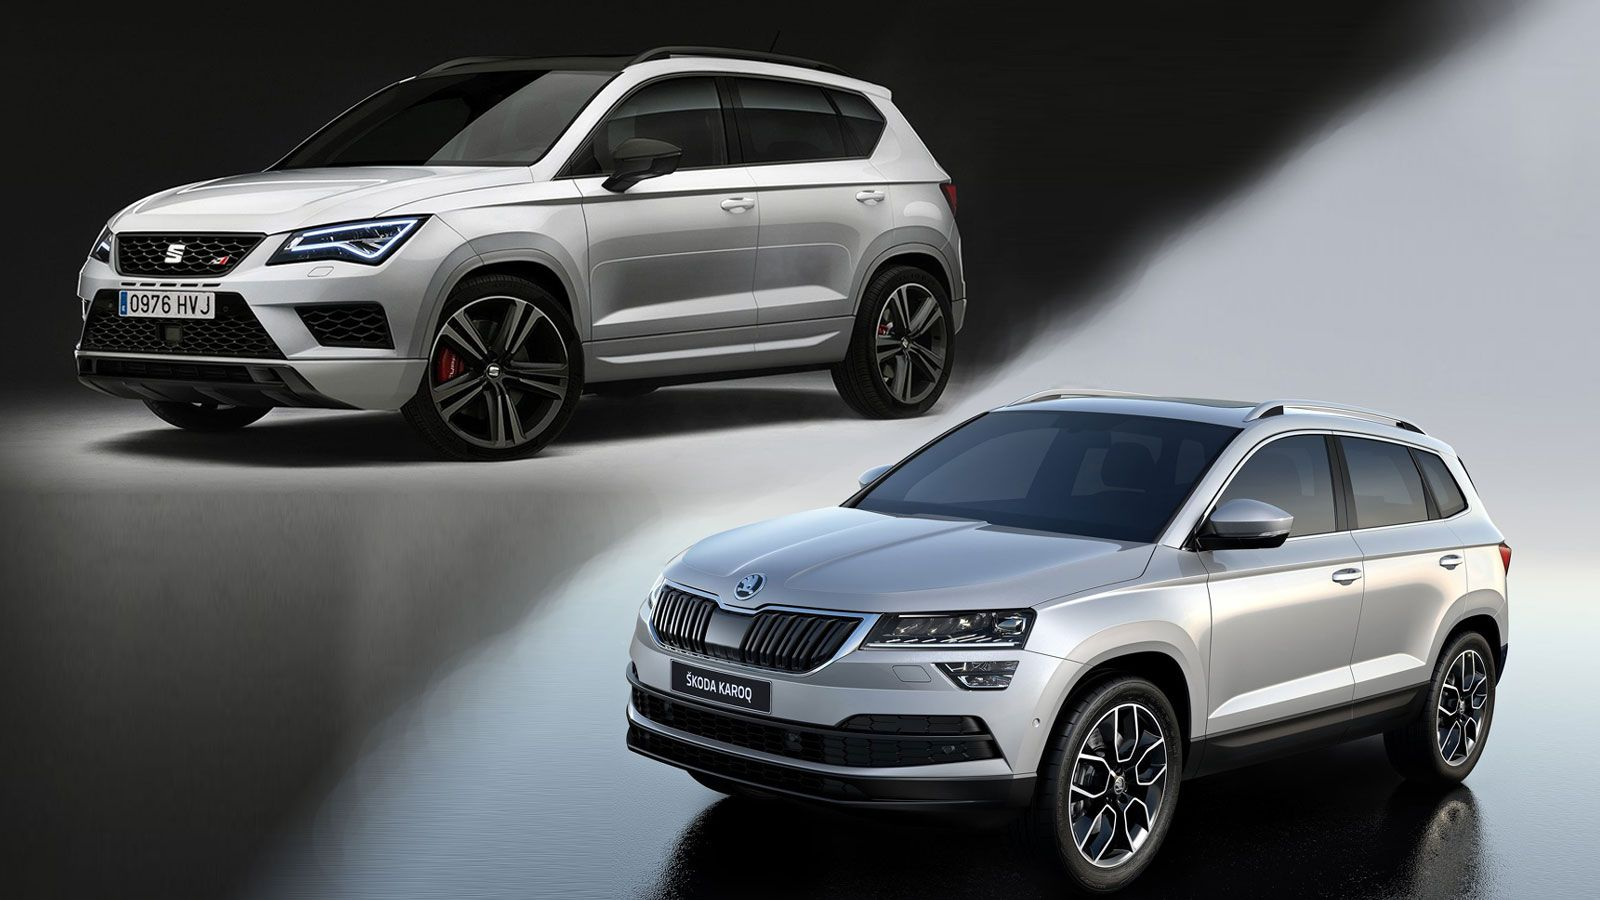 karoq rs ateca cupra skoda. Black Bedroom Furniture Sets. Home Design Ideas